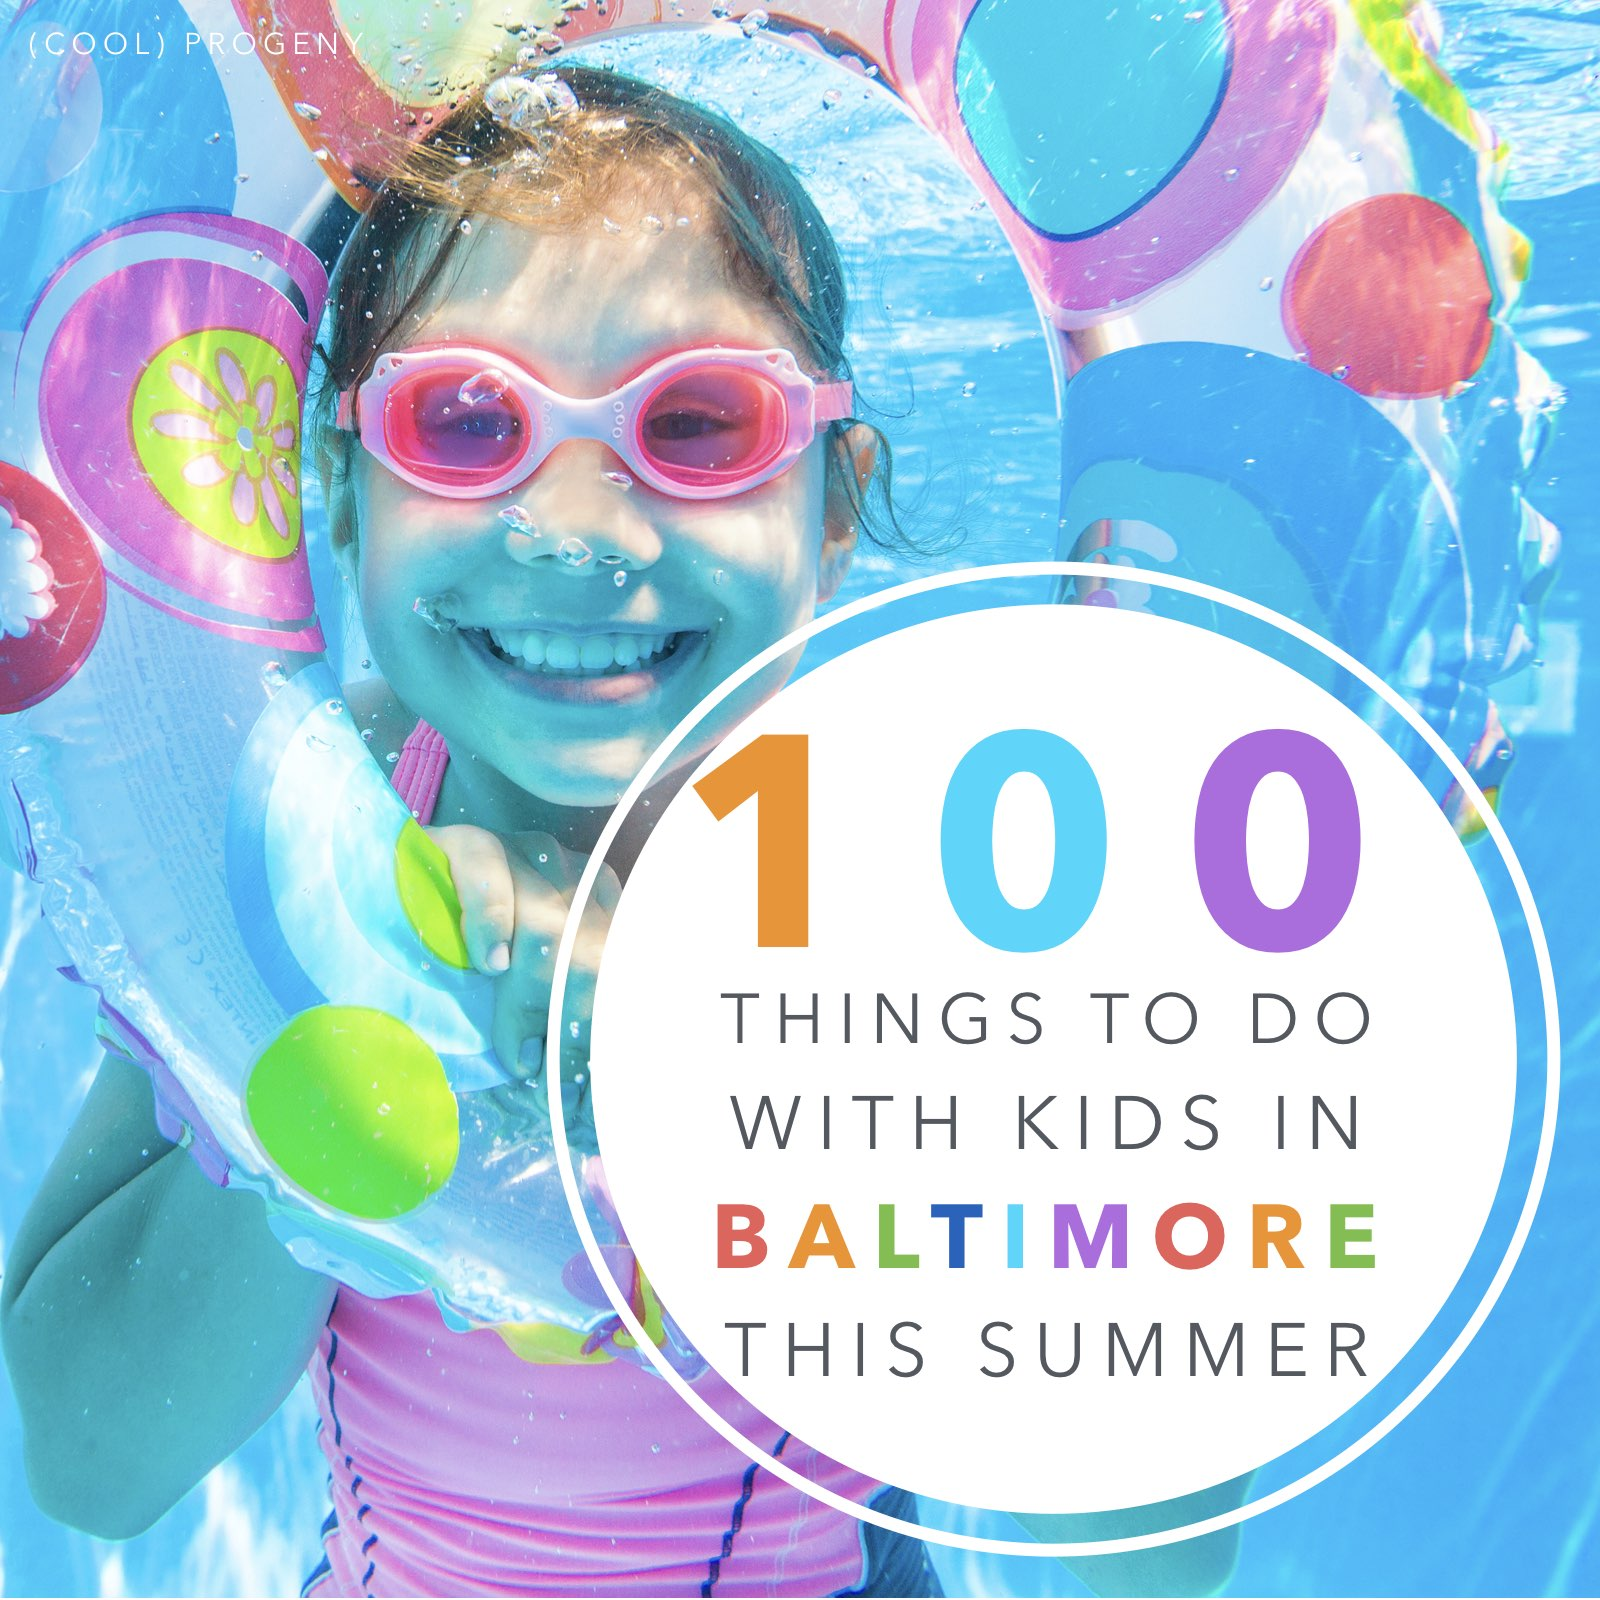 100 Things To Do with Kids in Baltimore This Summer - (cool) progeny